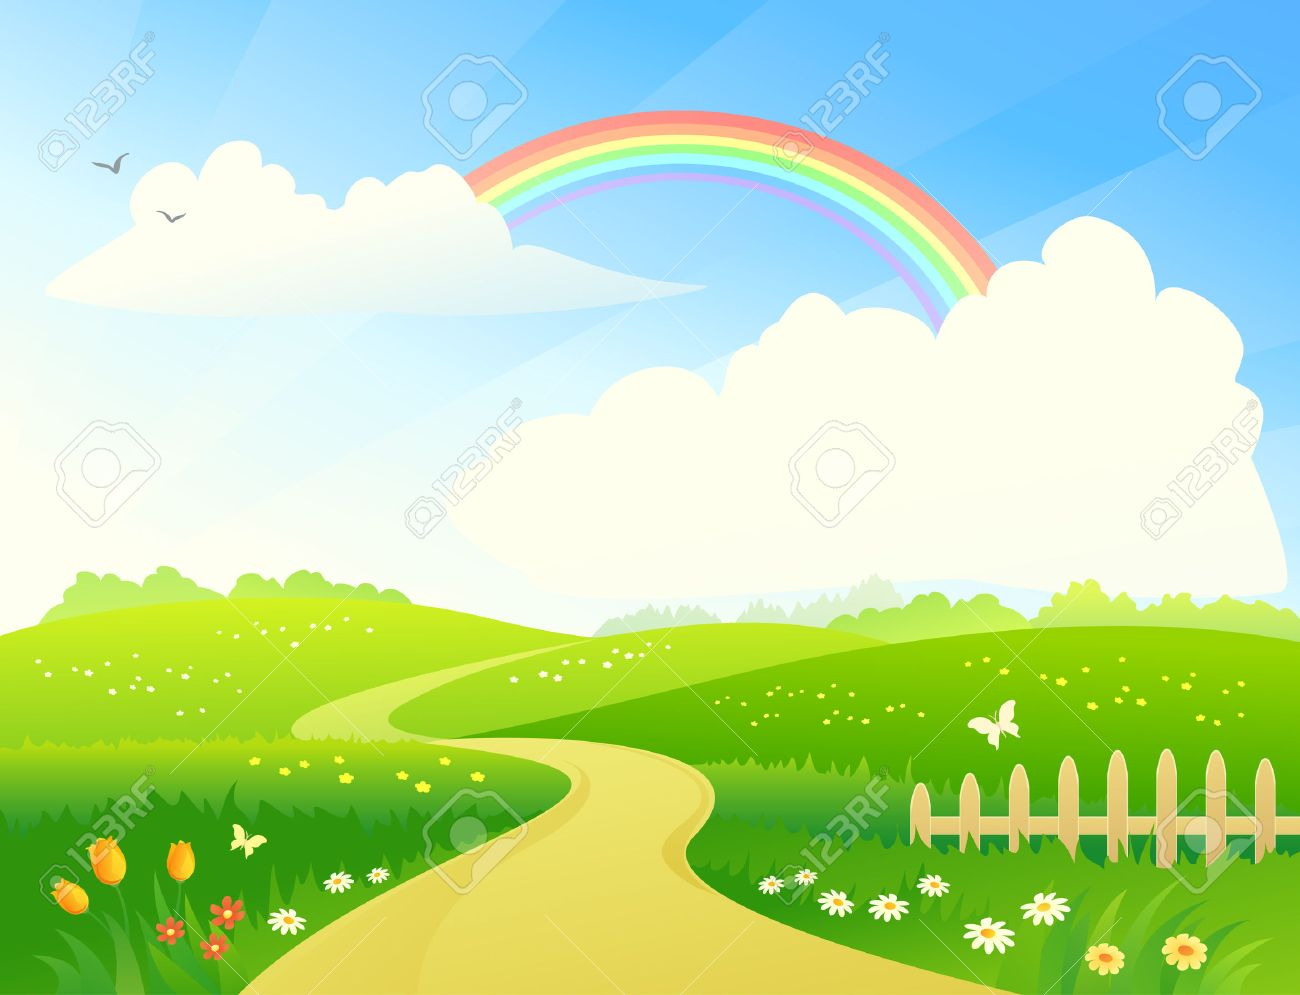 vector illustration of a hilly landscape with a rainbow royalty